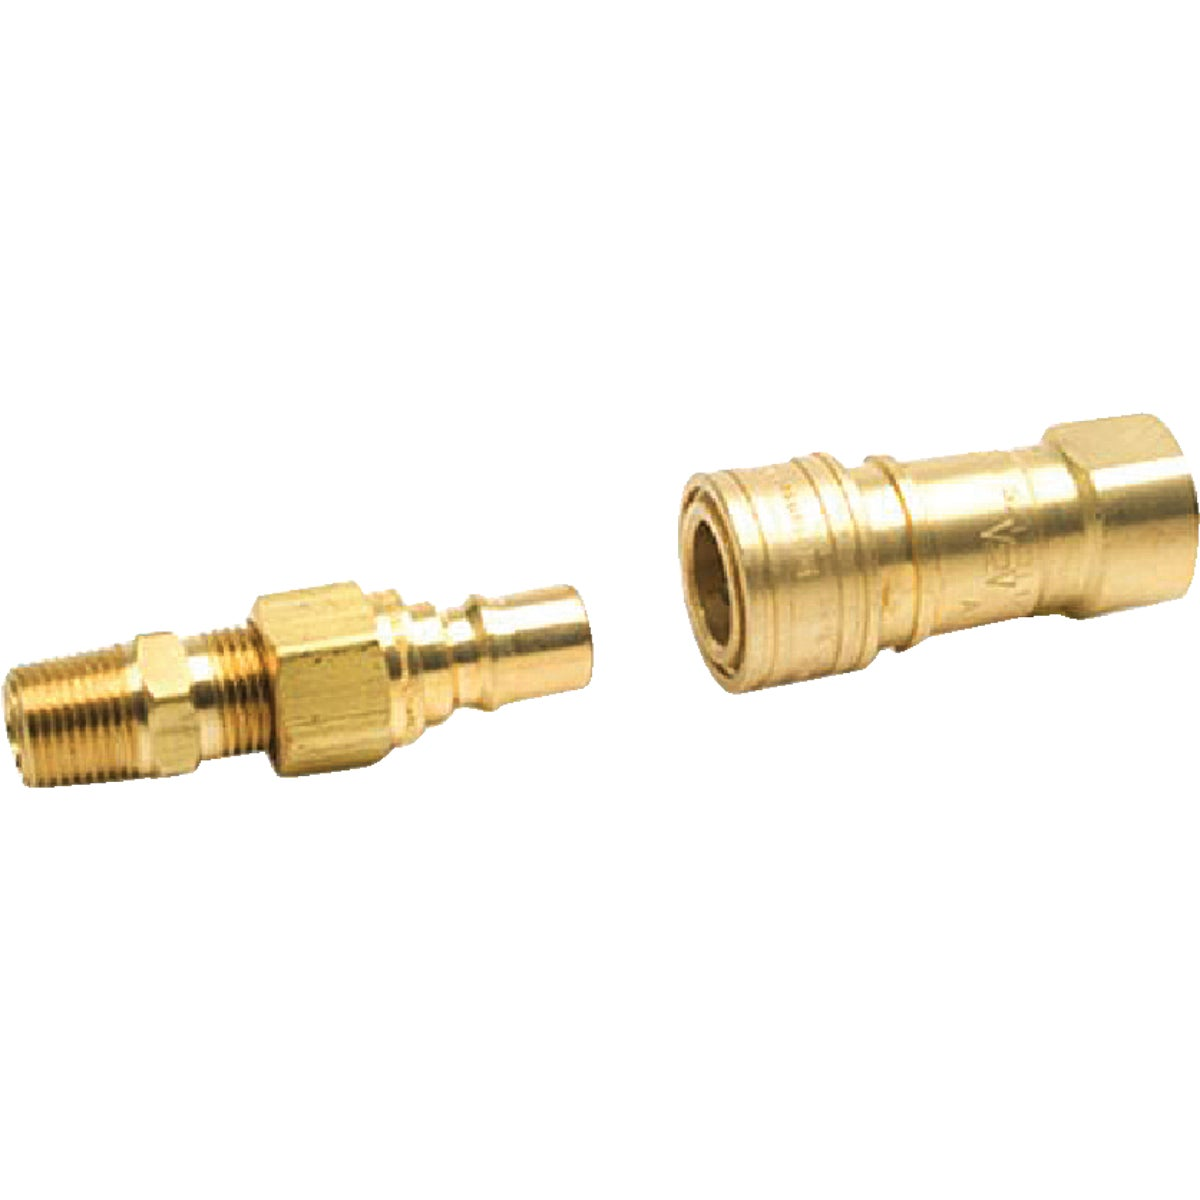 "3/8"" GAS CONNECTOR - F276187 by Mr Heater Corp"